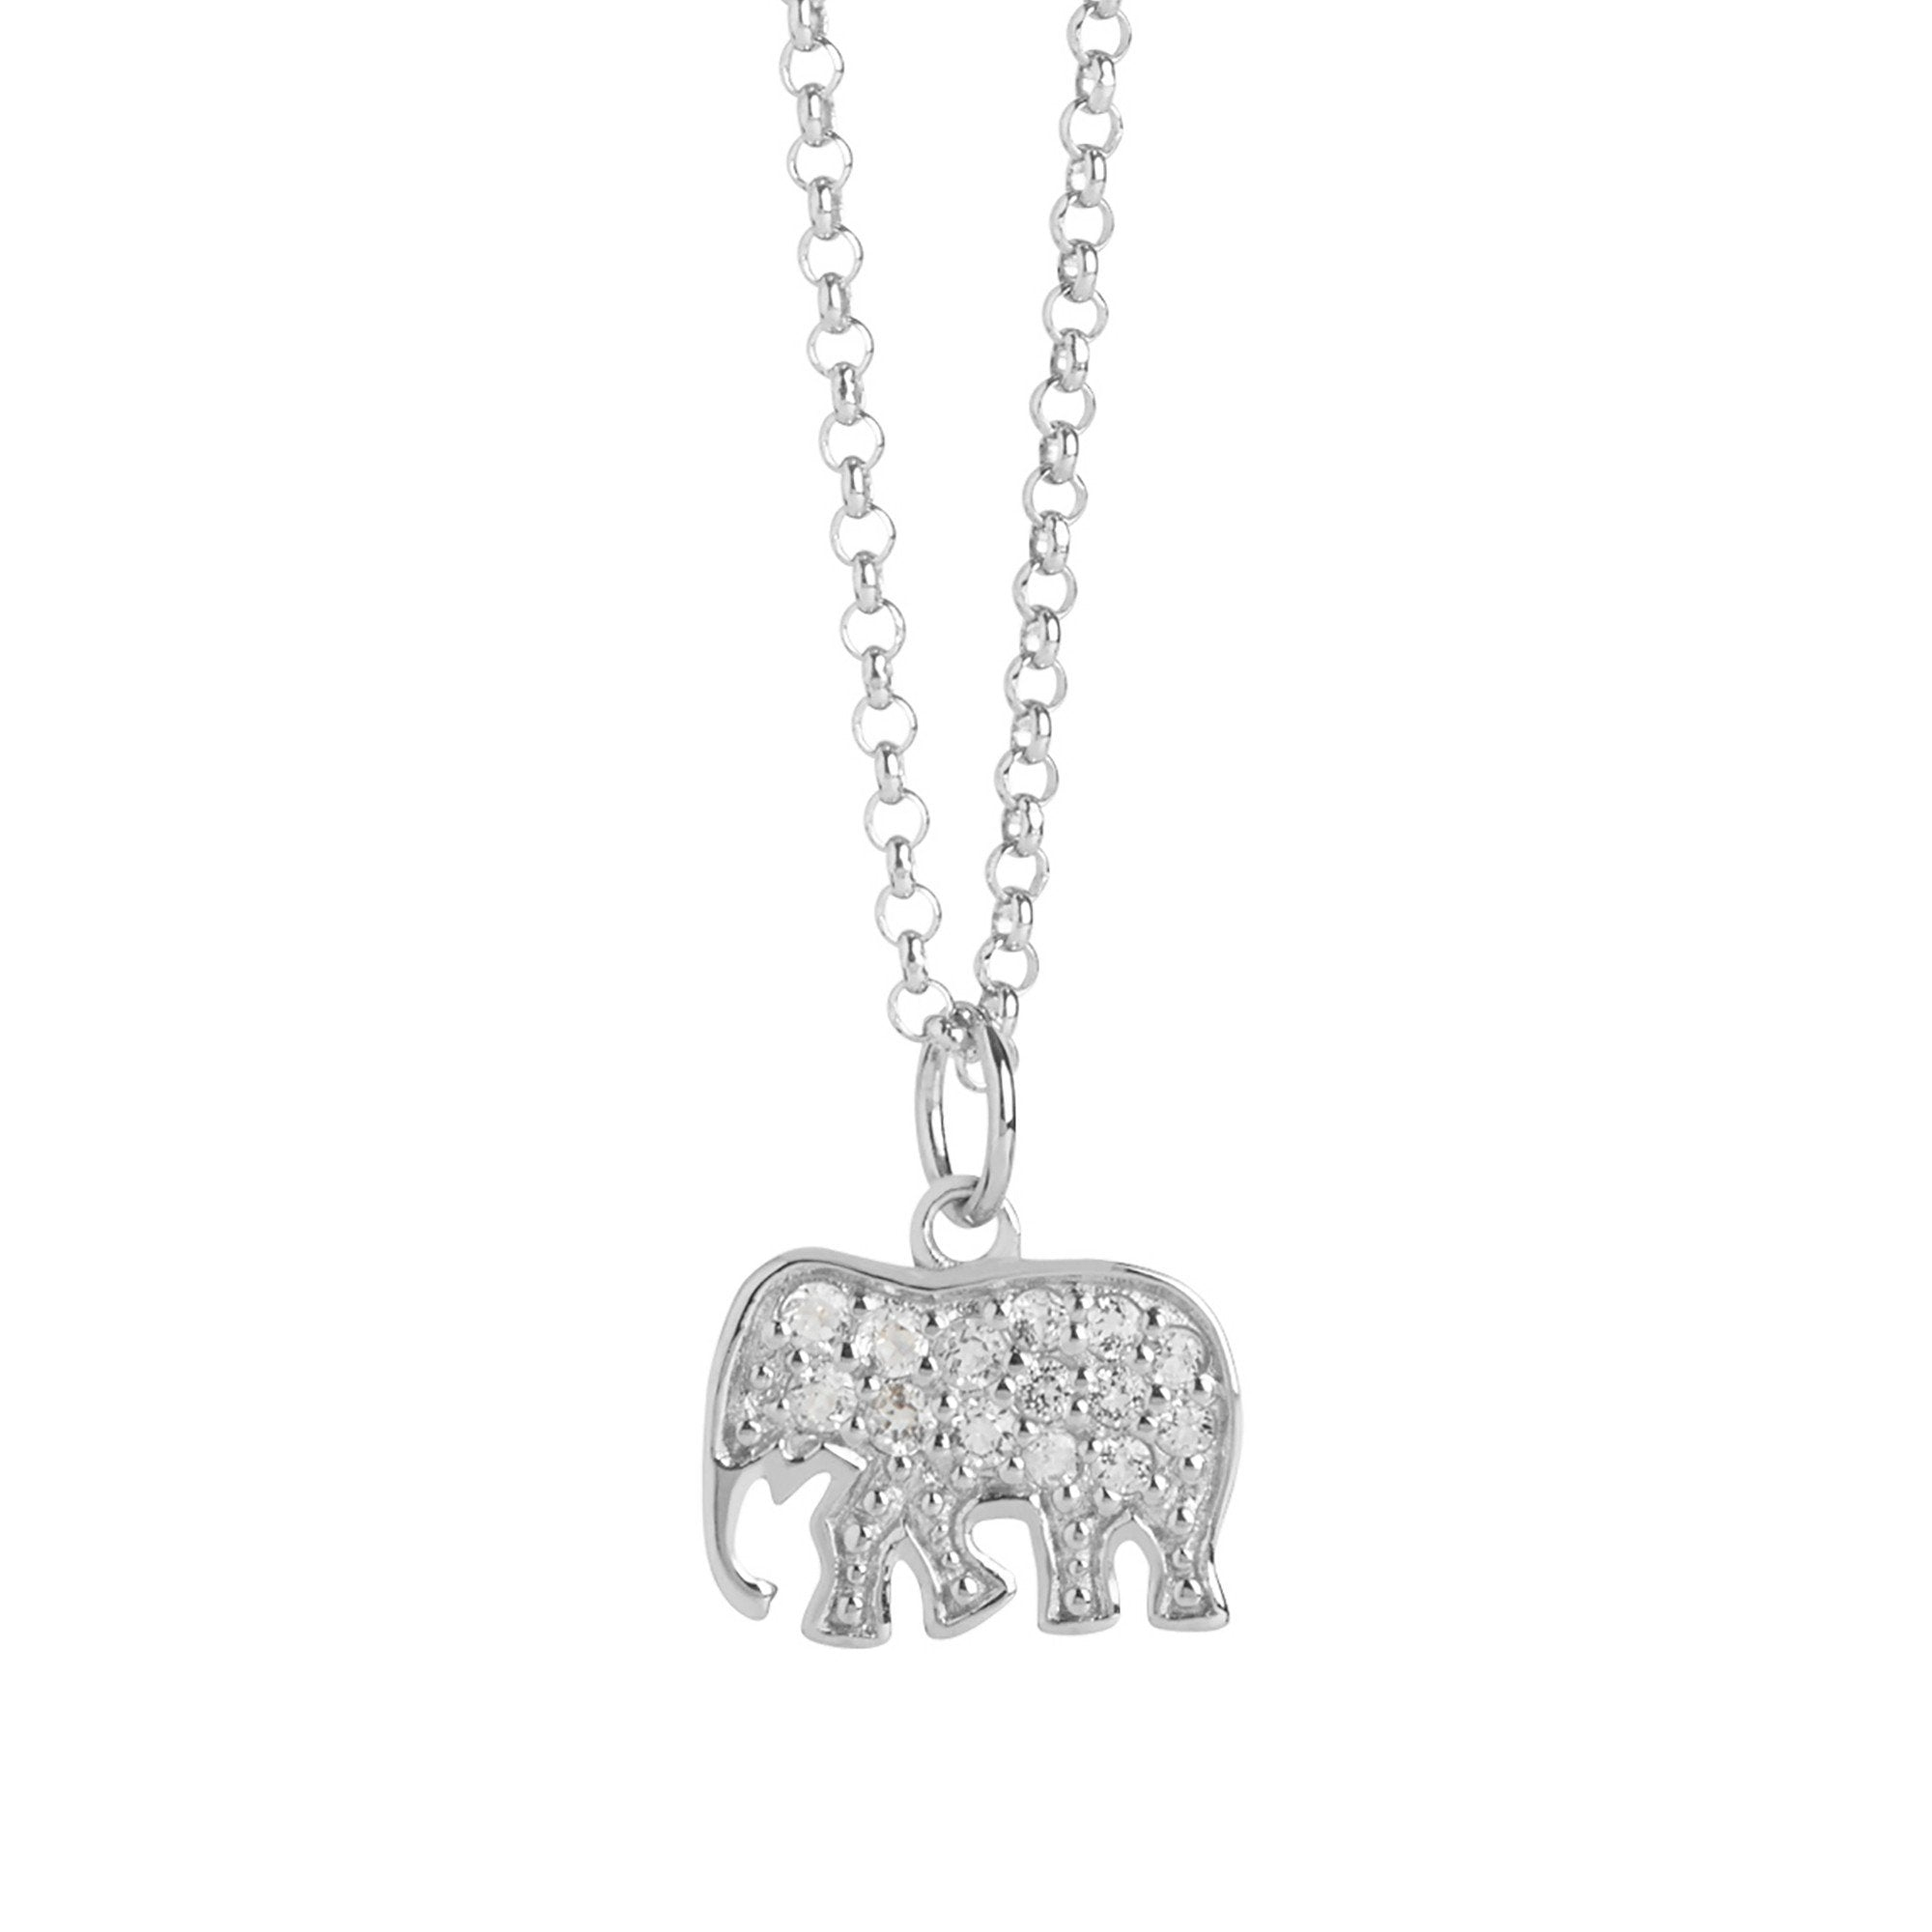 Muru Elephant Pendant with Topaz Jewellery Muru